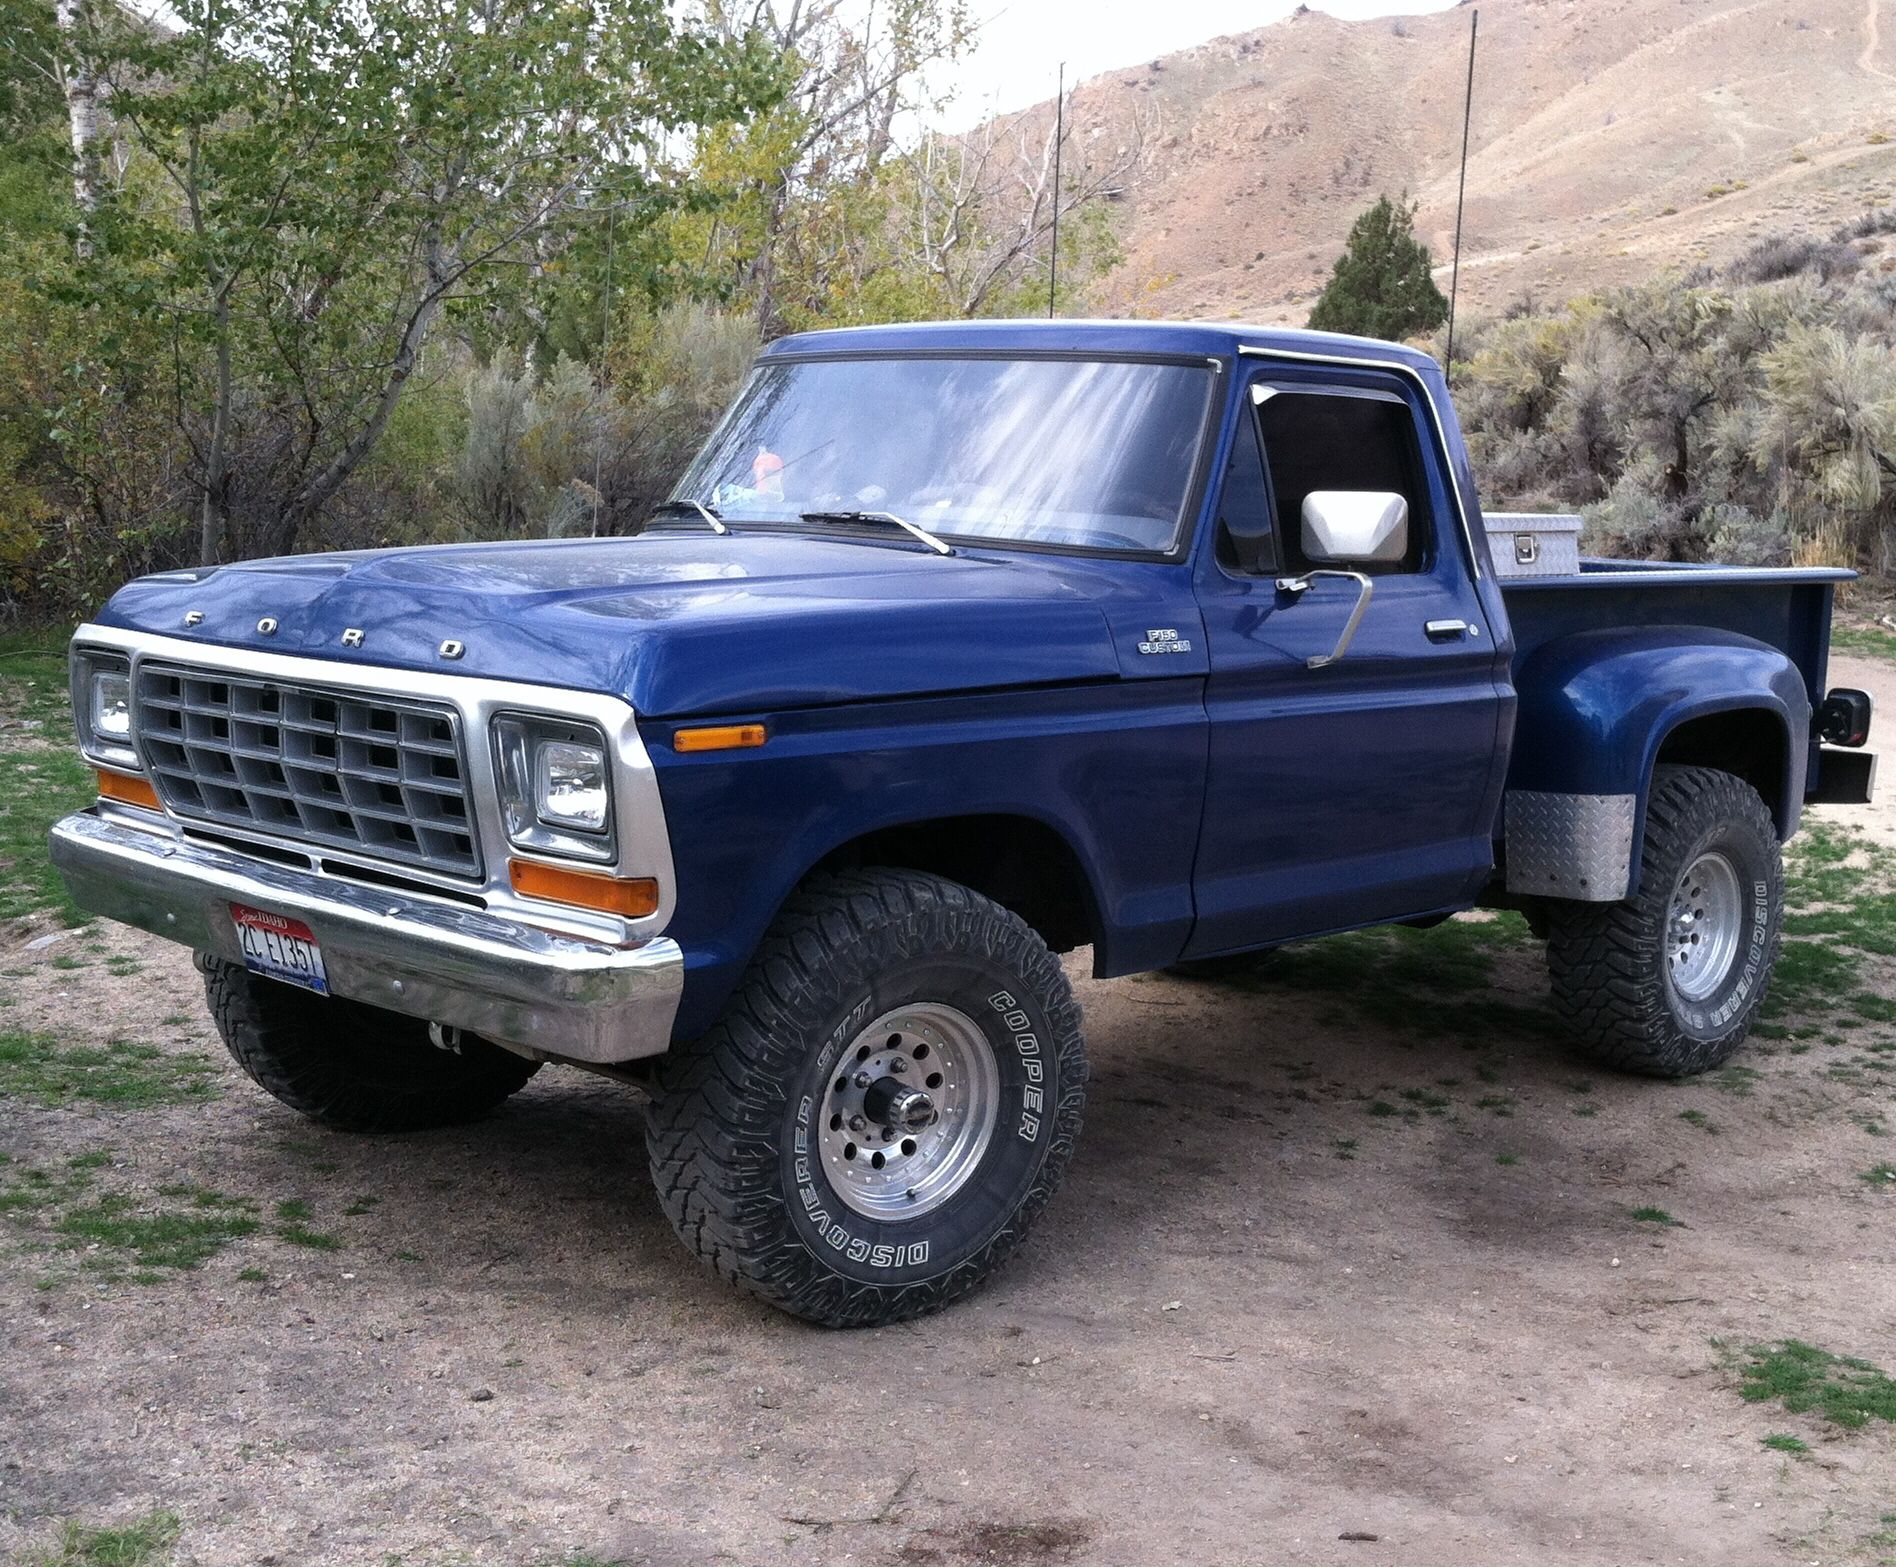 1979 ford stepside the material which i can produce is suitable for different flat objects